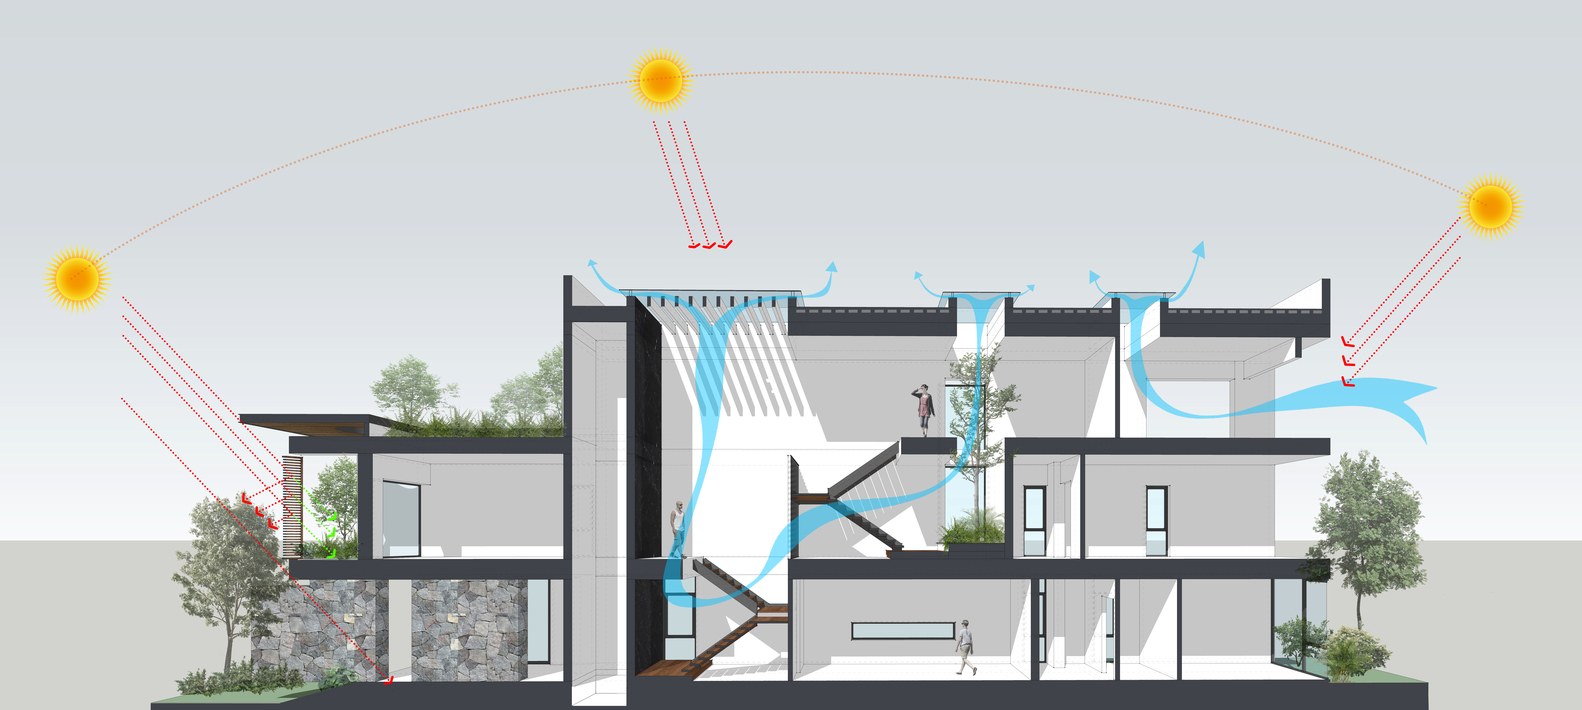 house of light wind ray architecture viet nam diagram 03 [ 1582 x 710 Pixel ]